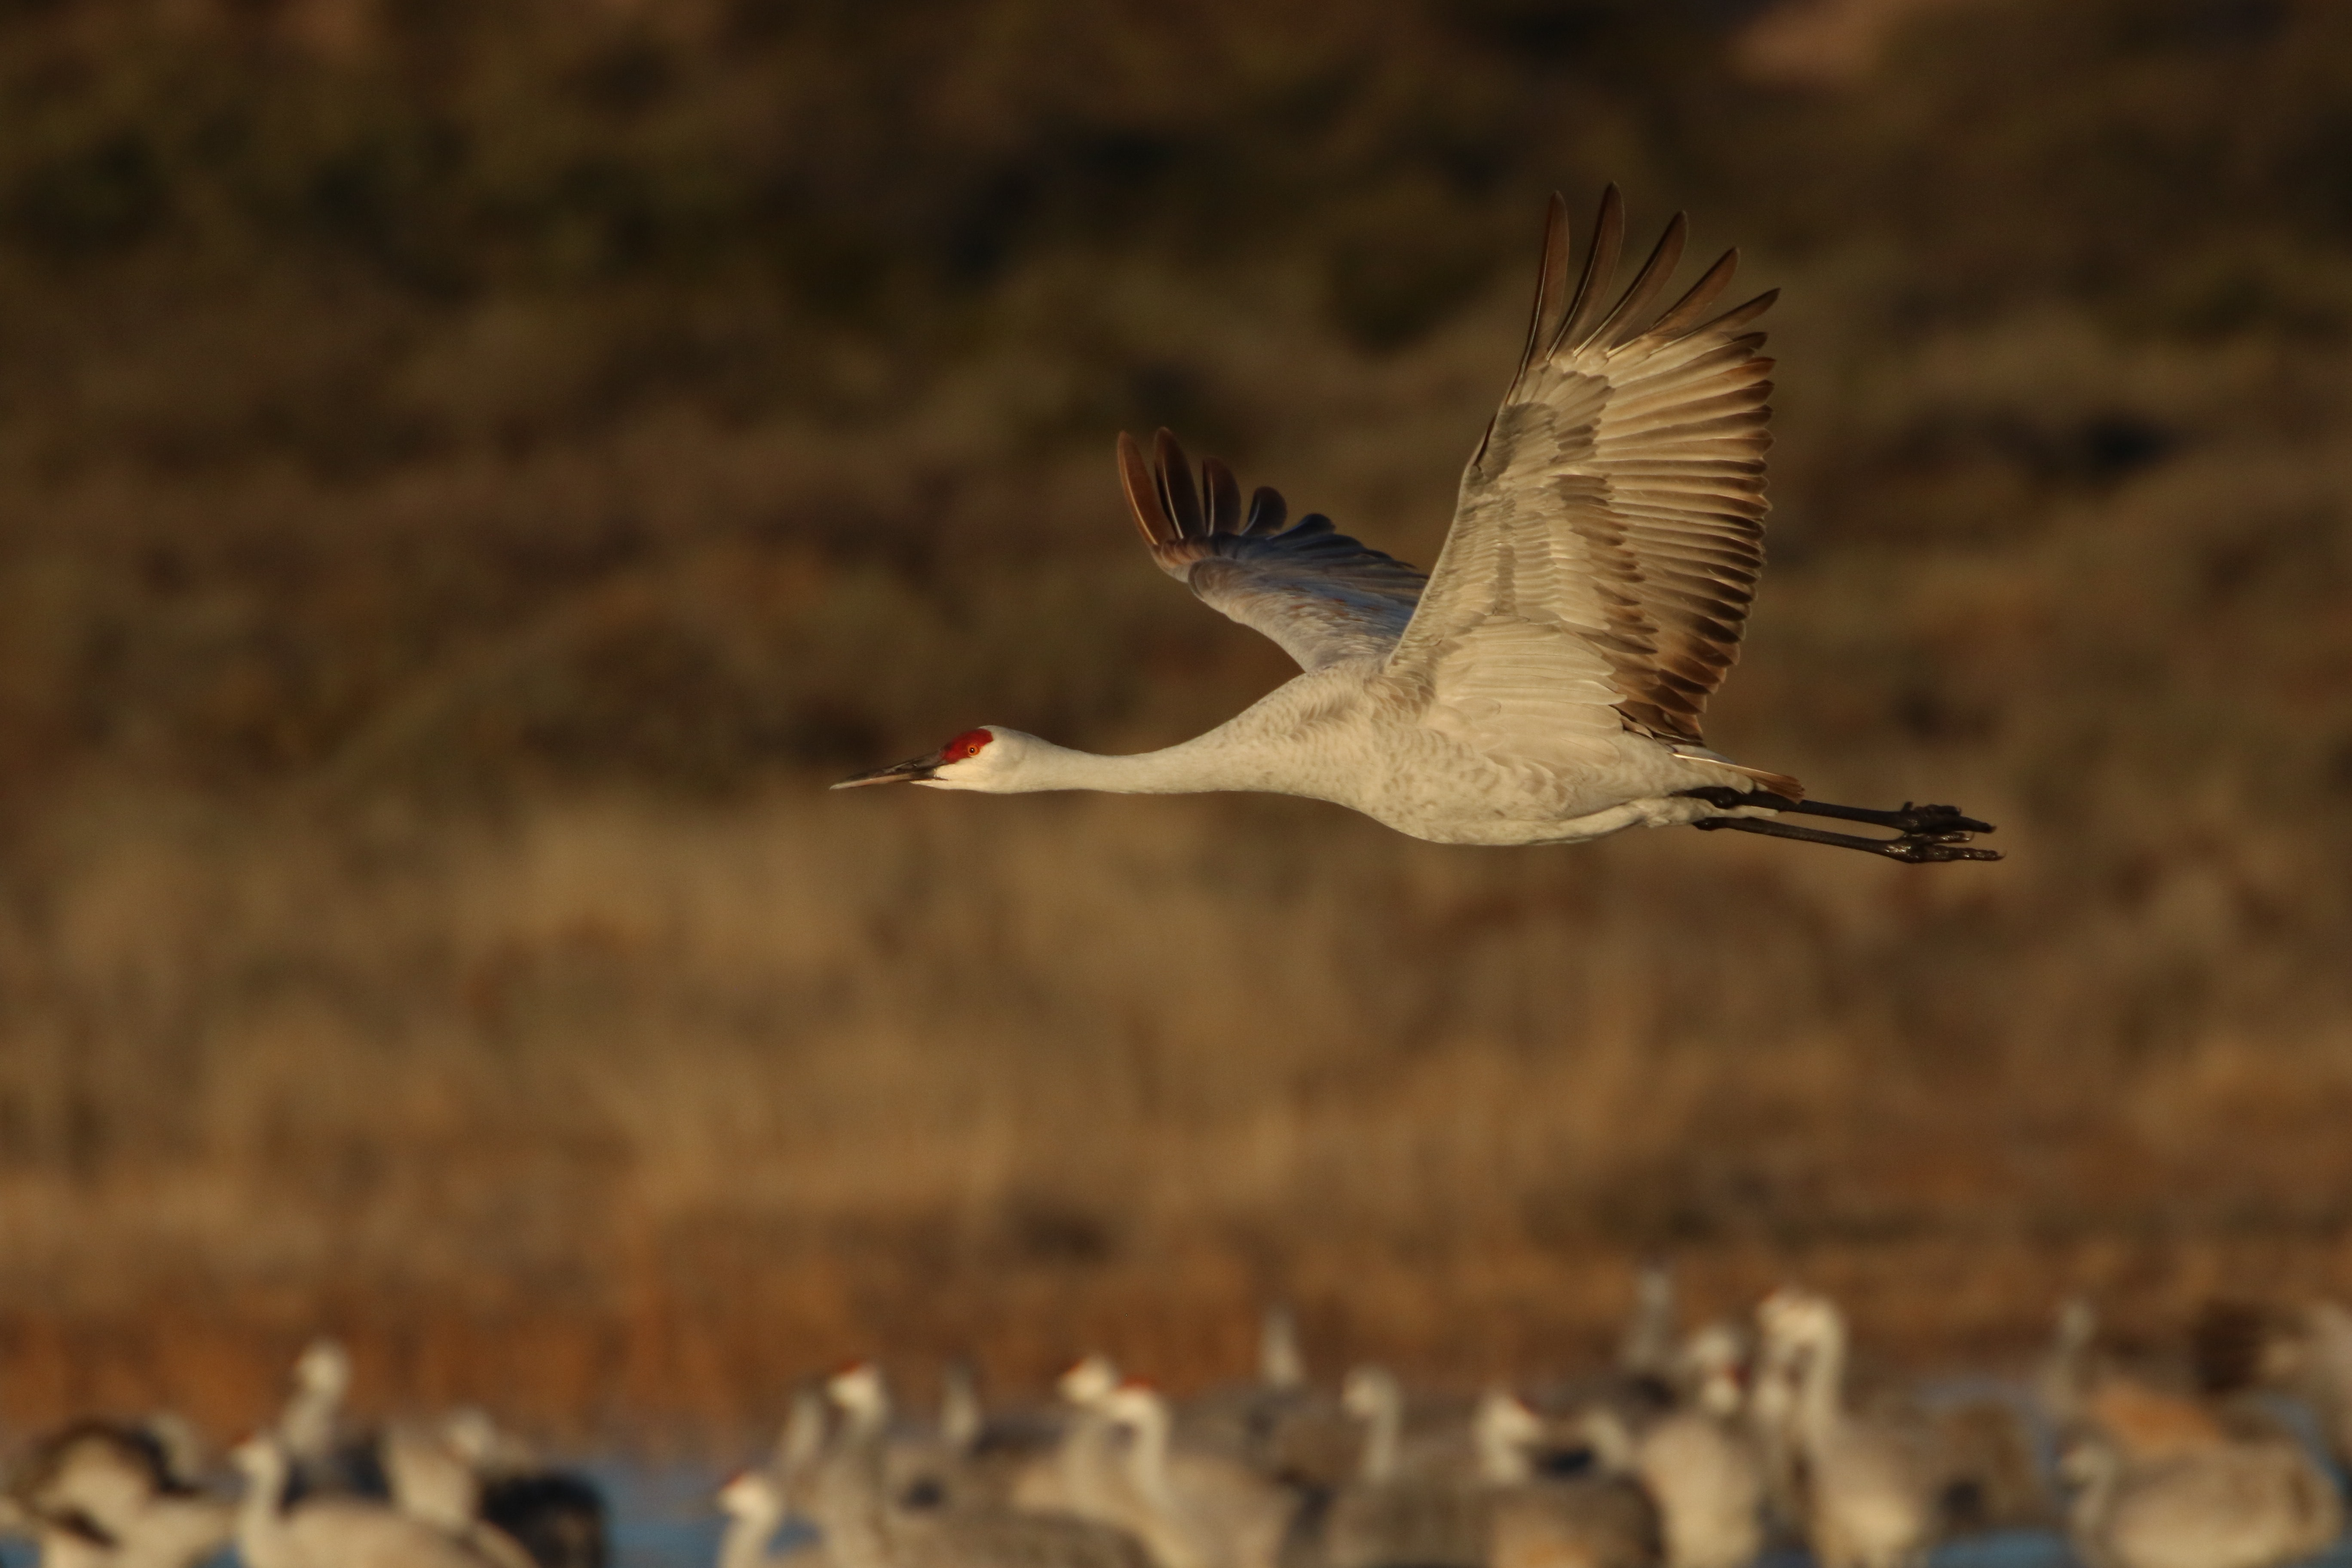 sandhill crane bird flying during daytime selective focus photography